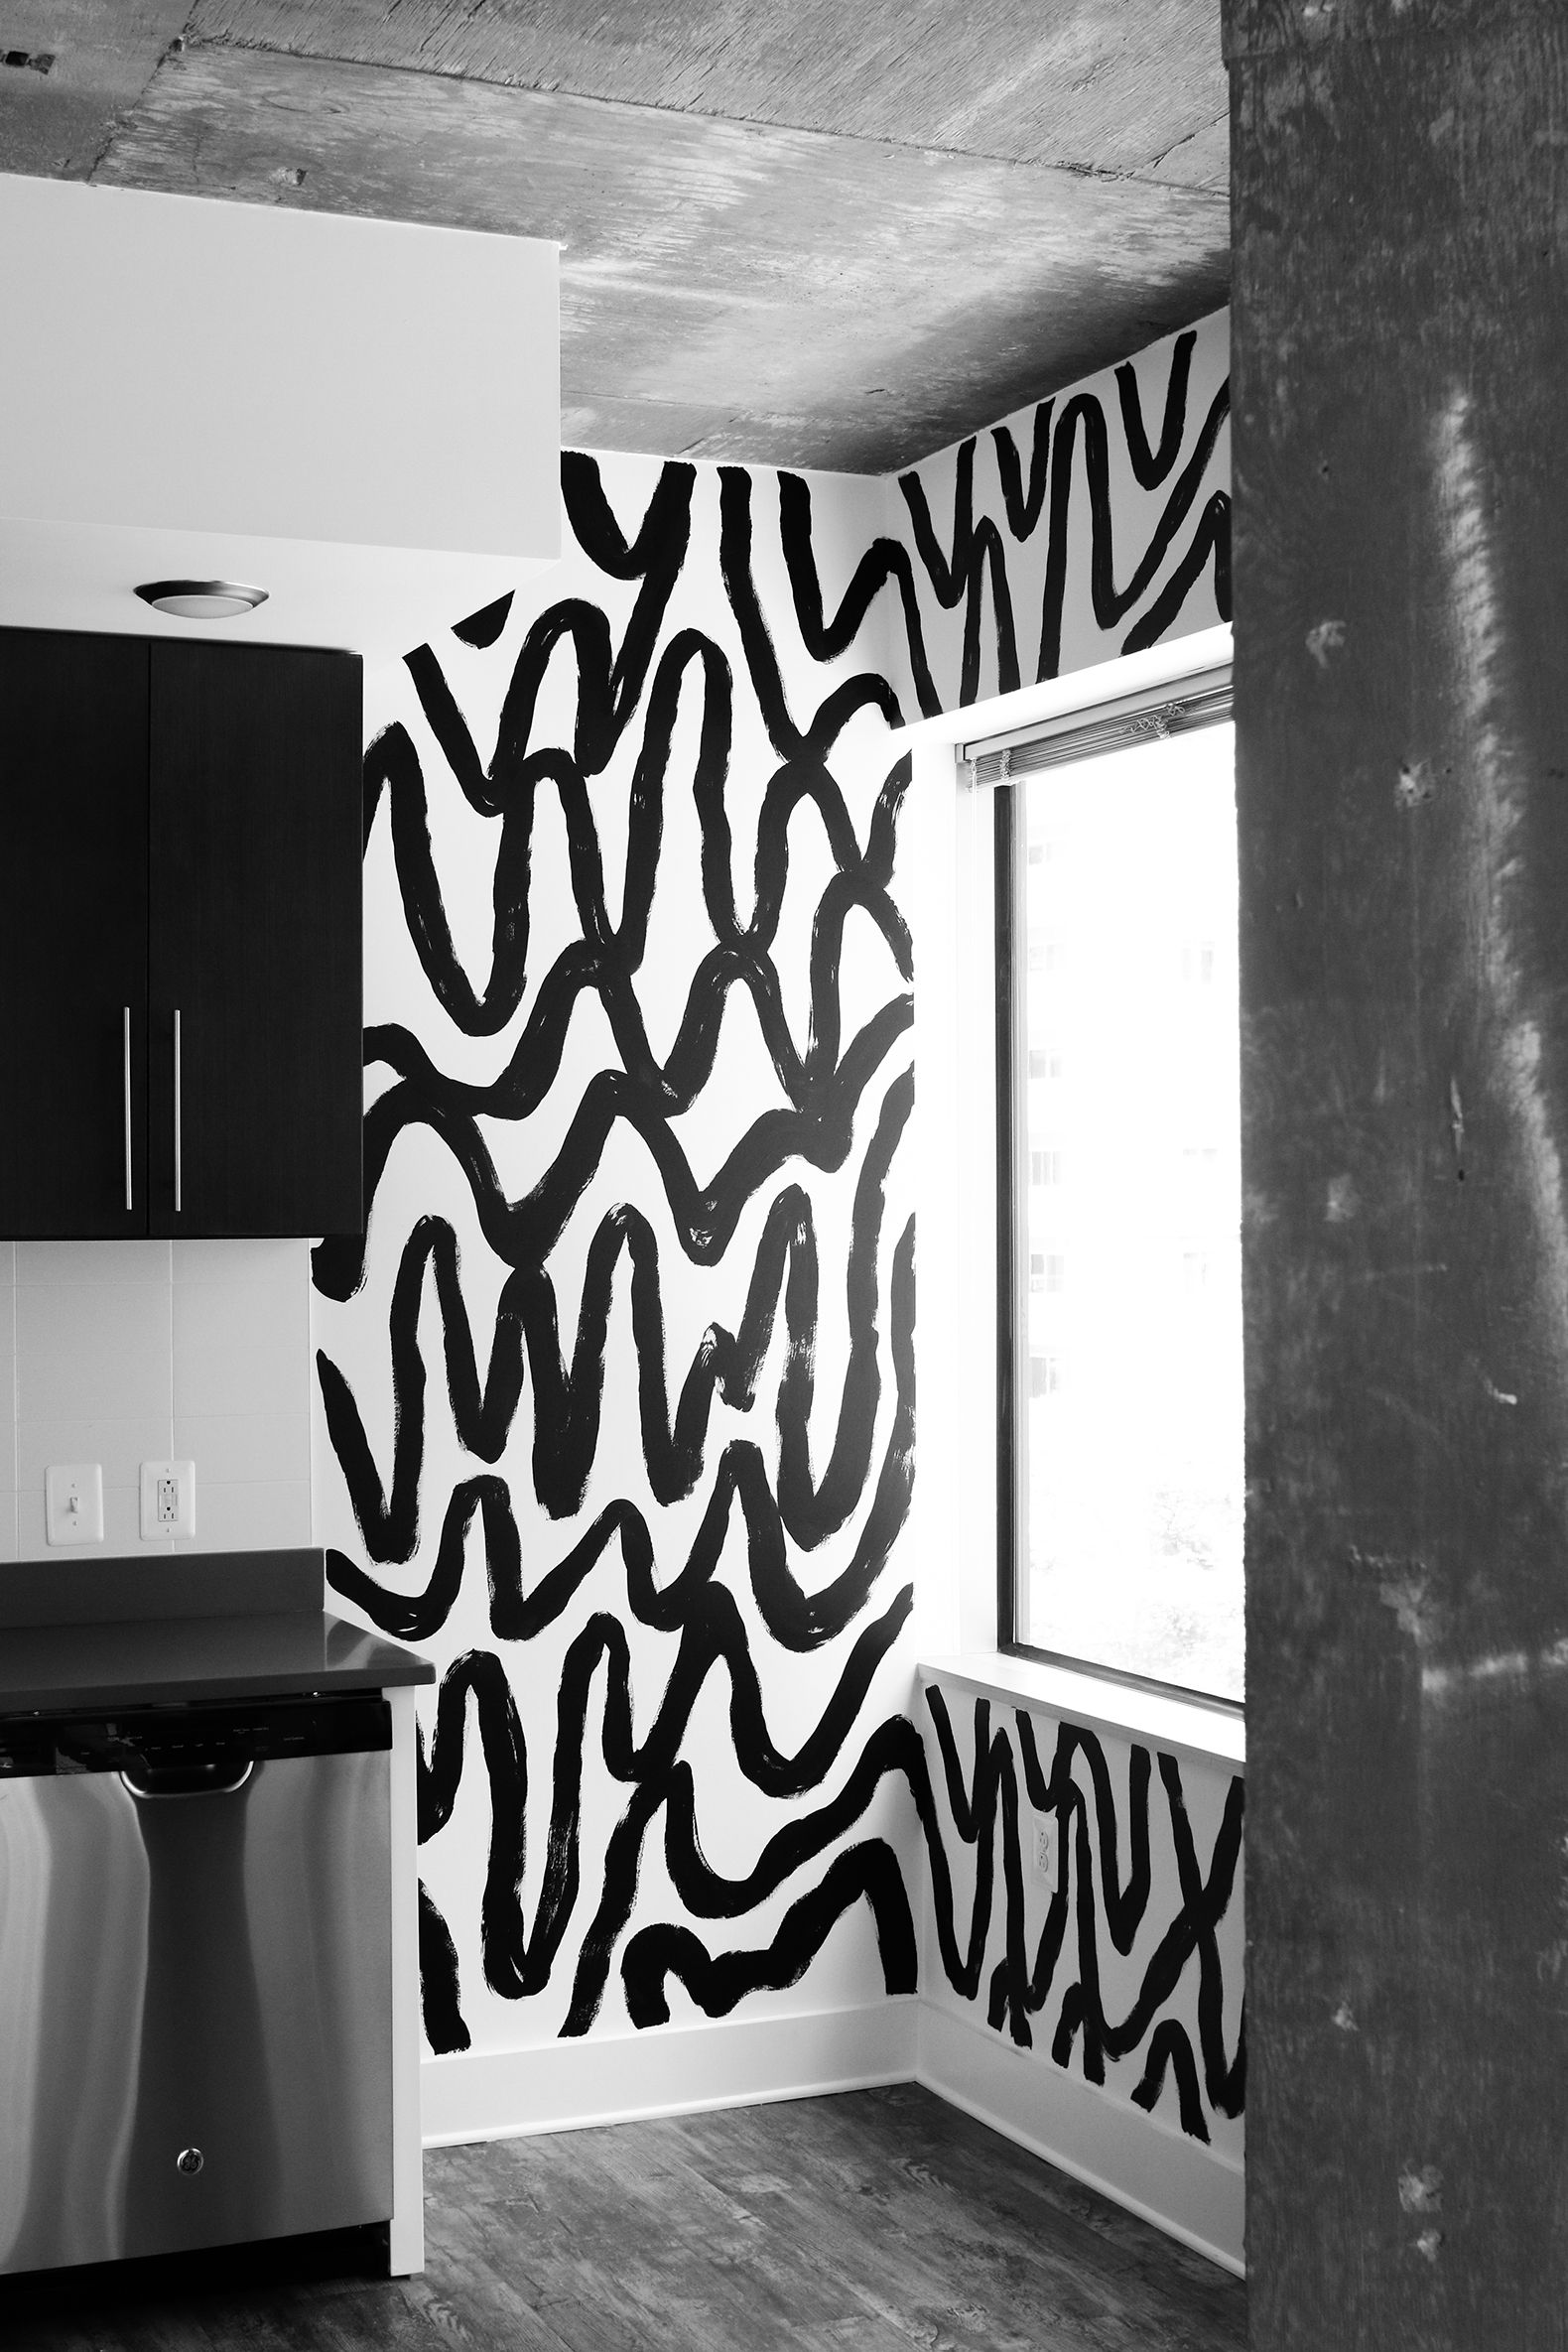 Black White Abstract Mural Wall Murals Painted Mural Black And White Graffiti